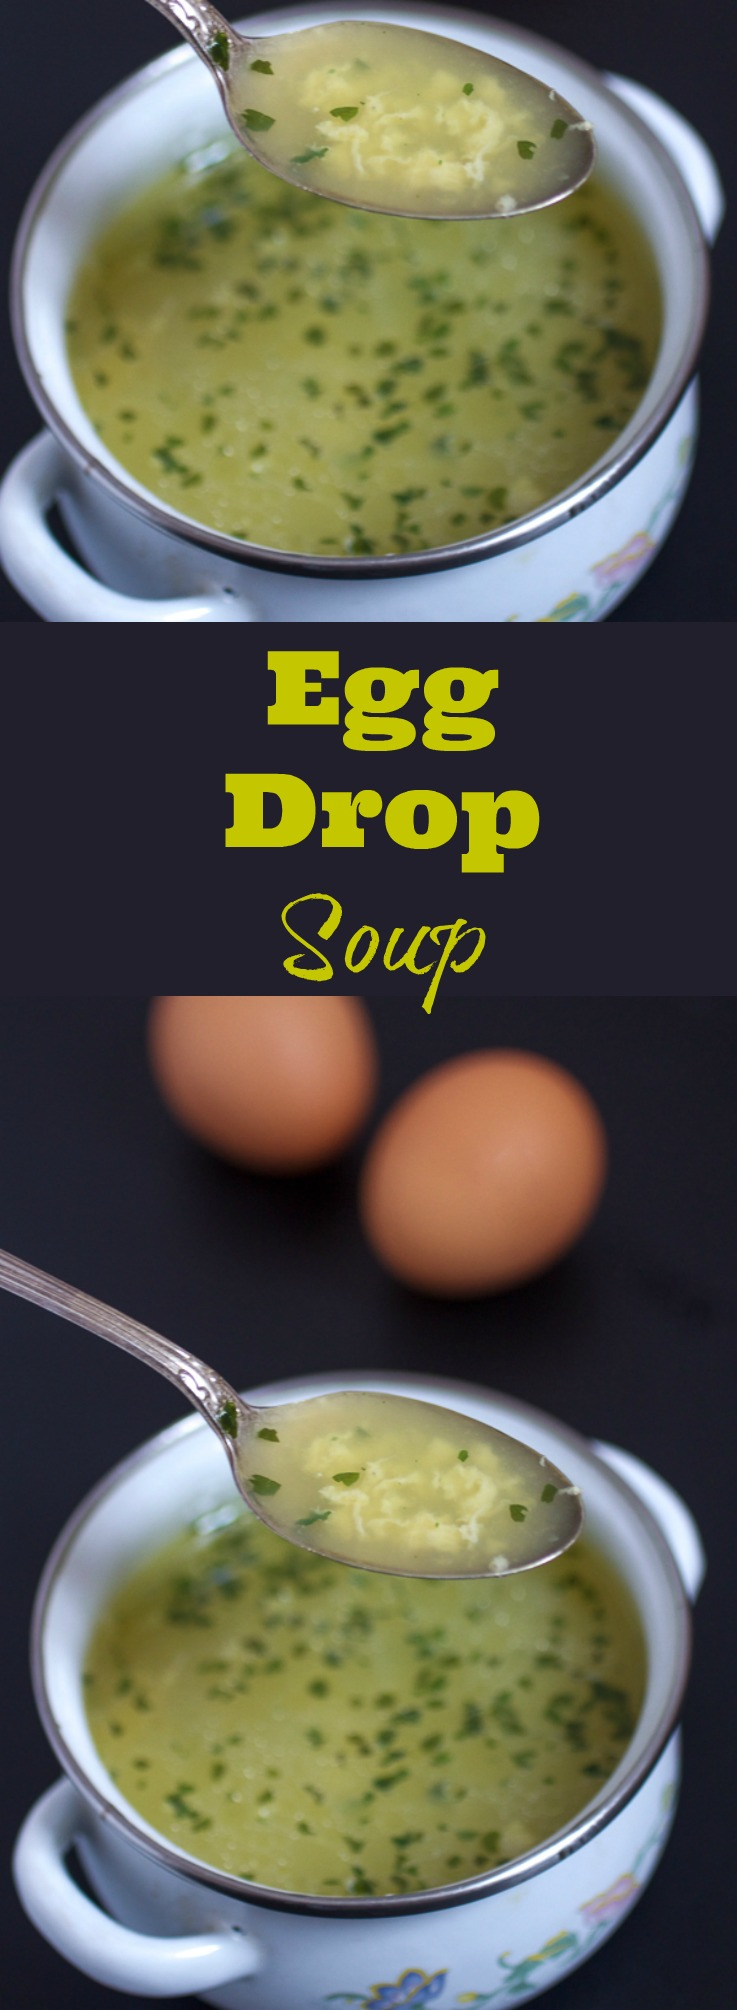 Egg drop soup recipe: appetizer choice you'll never regret! This 20-min, heart warming soup will bring the family back to the dinner table. What are you waiting for?